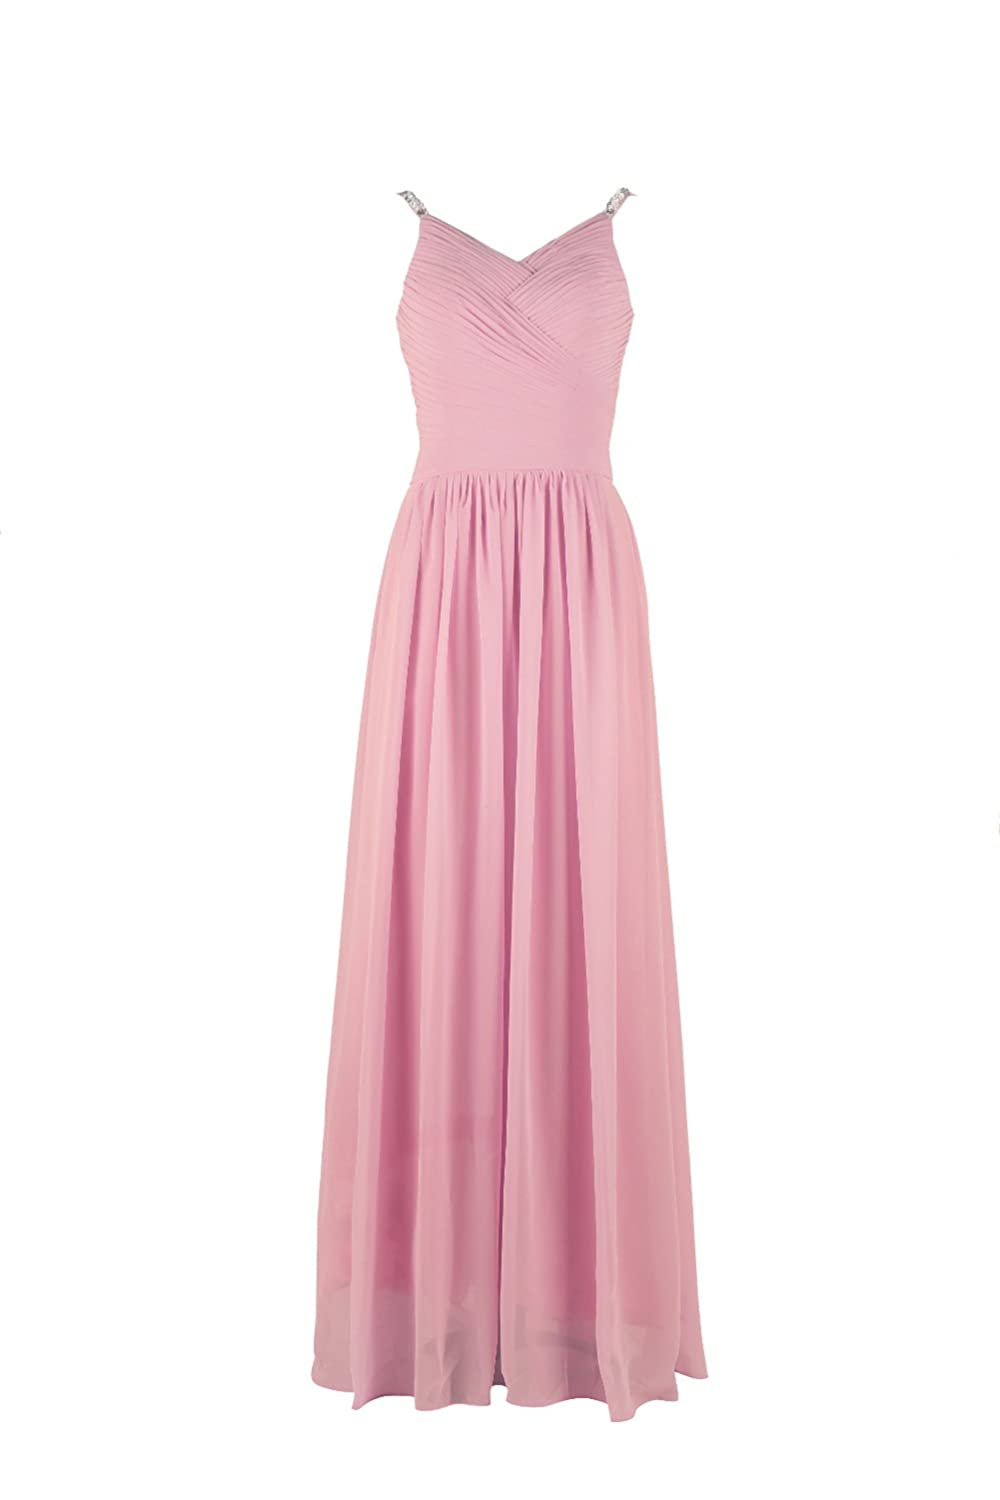 YiYaDawn Women's Long Bridesmaid Dress Evening Ball Gowns